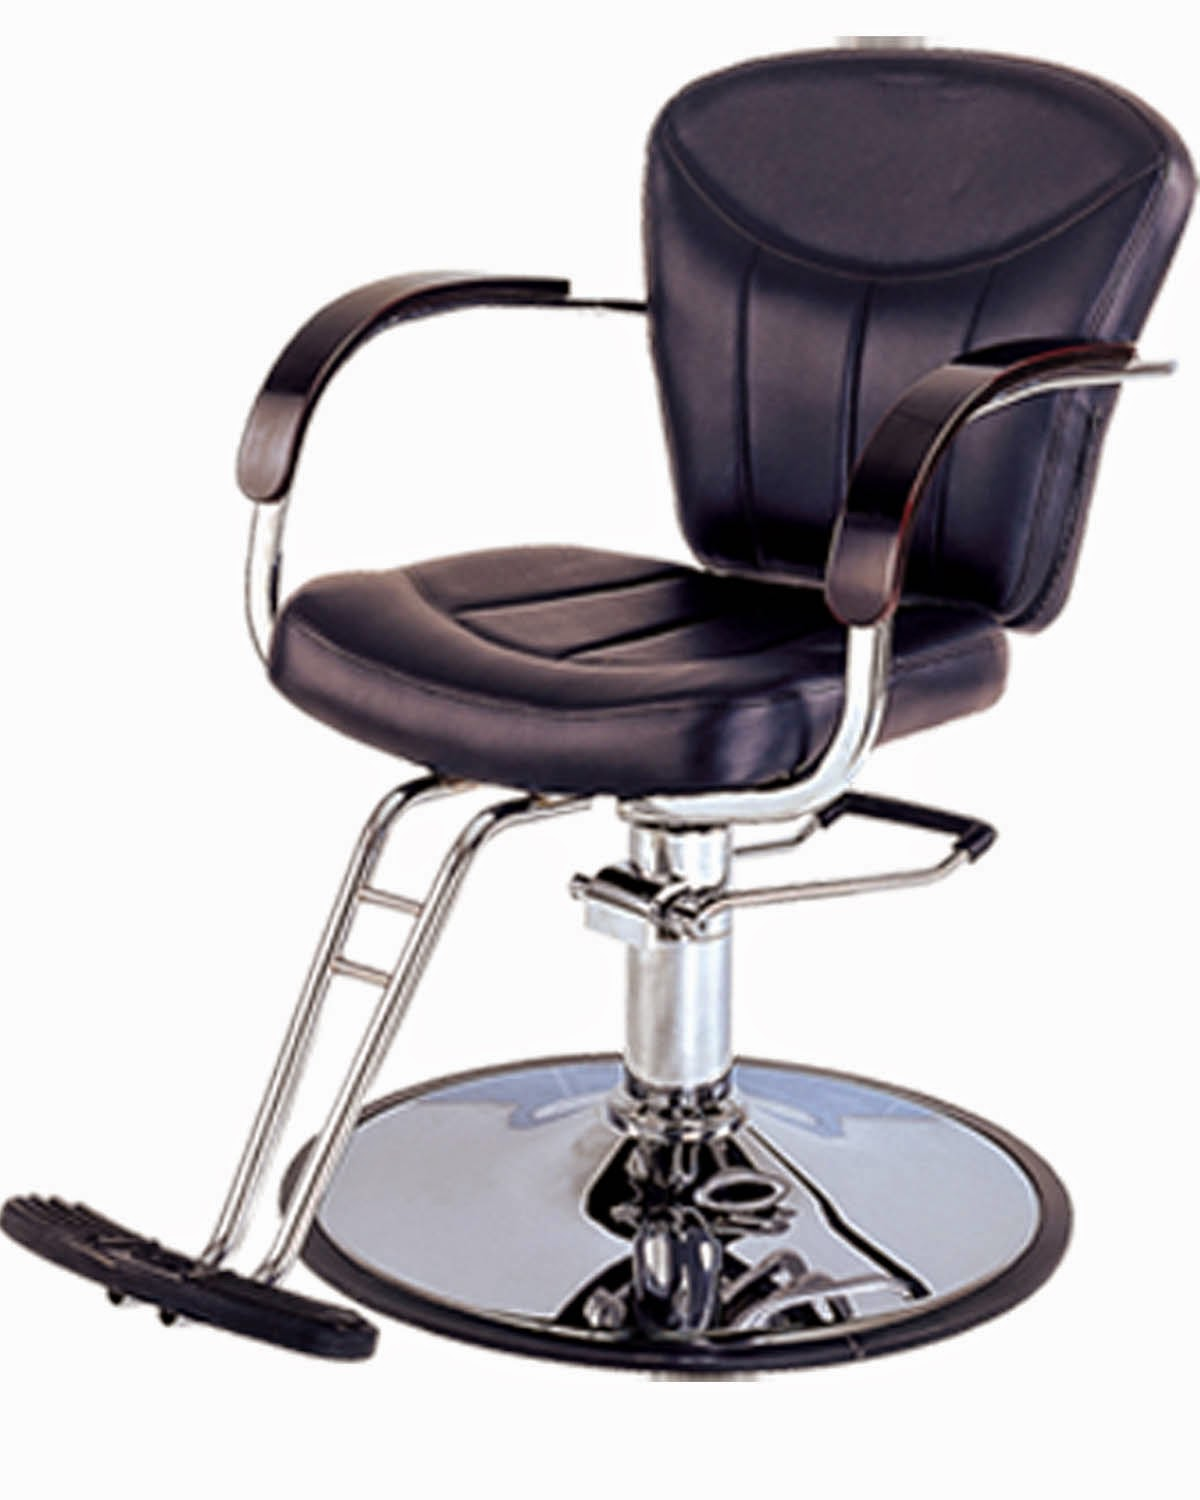 Beauty Salon Chair Makeuplove Beauty Fashion And Lifestyle Making Your